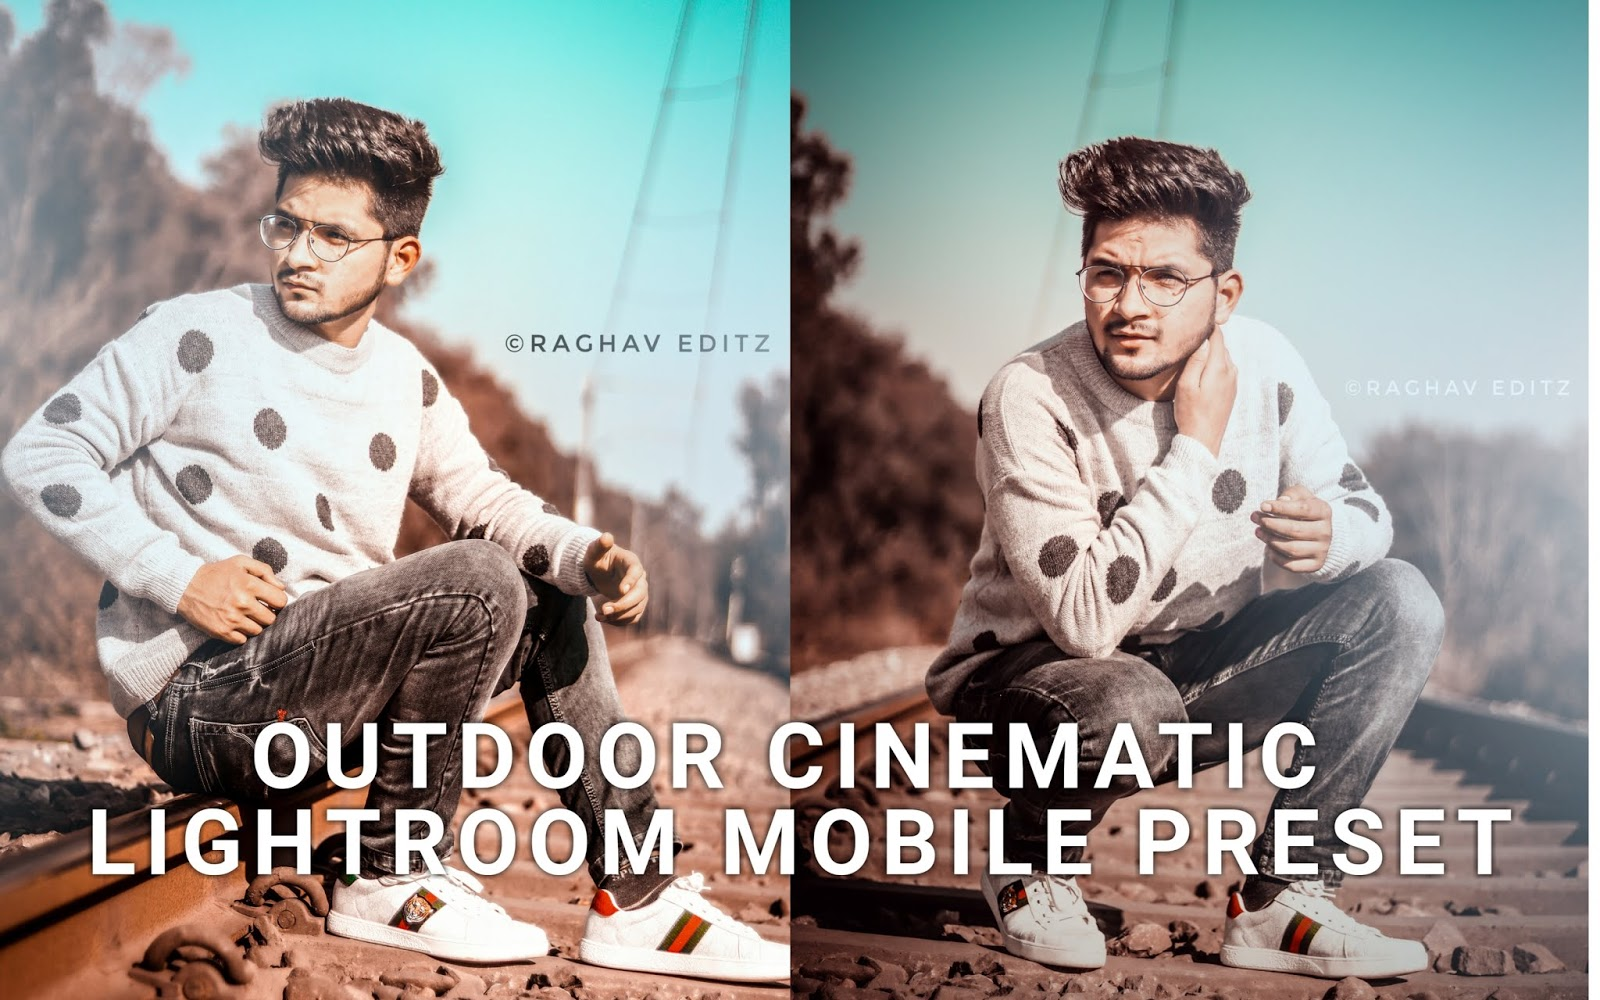 Cinematic lightroom preset, lightroom mobile preset, lightroom preset